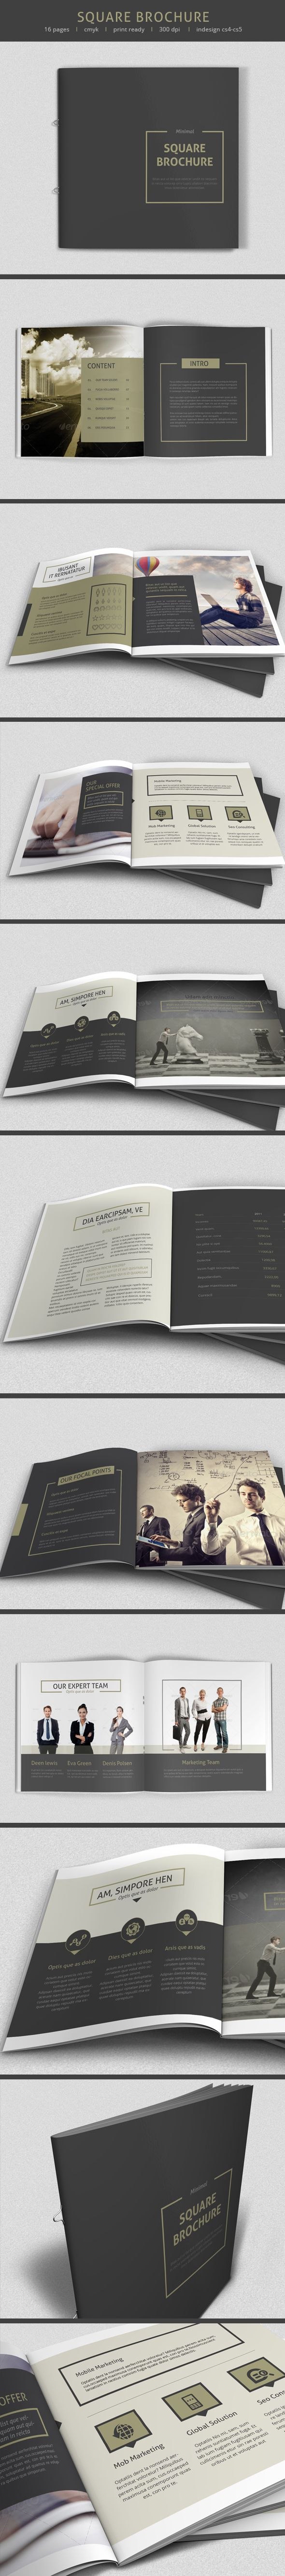 Minimal square Brochure by sz 81, via Behance- I really like the square shape continued throughout the book, it's very contemporary